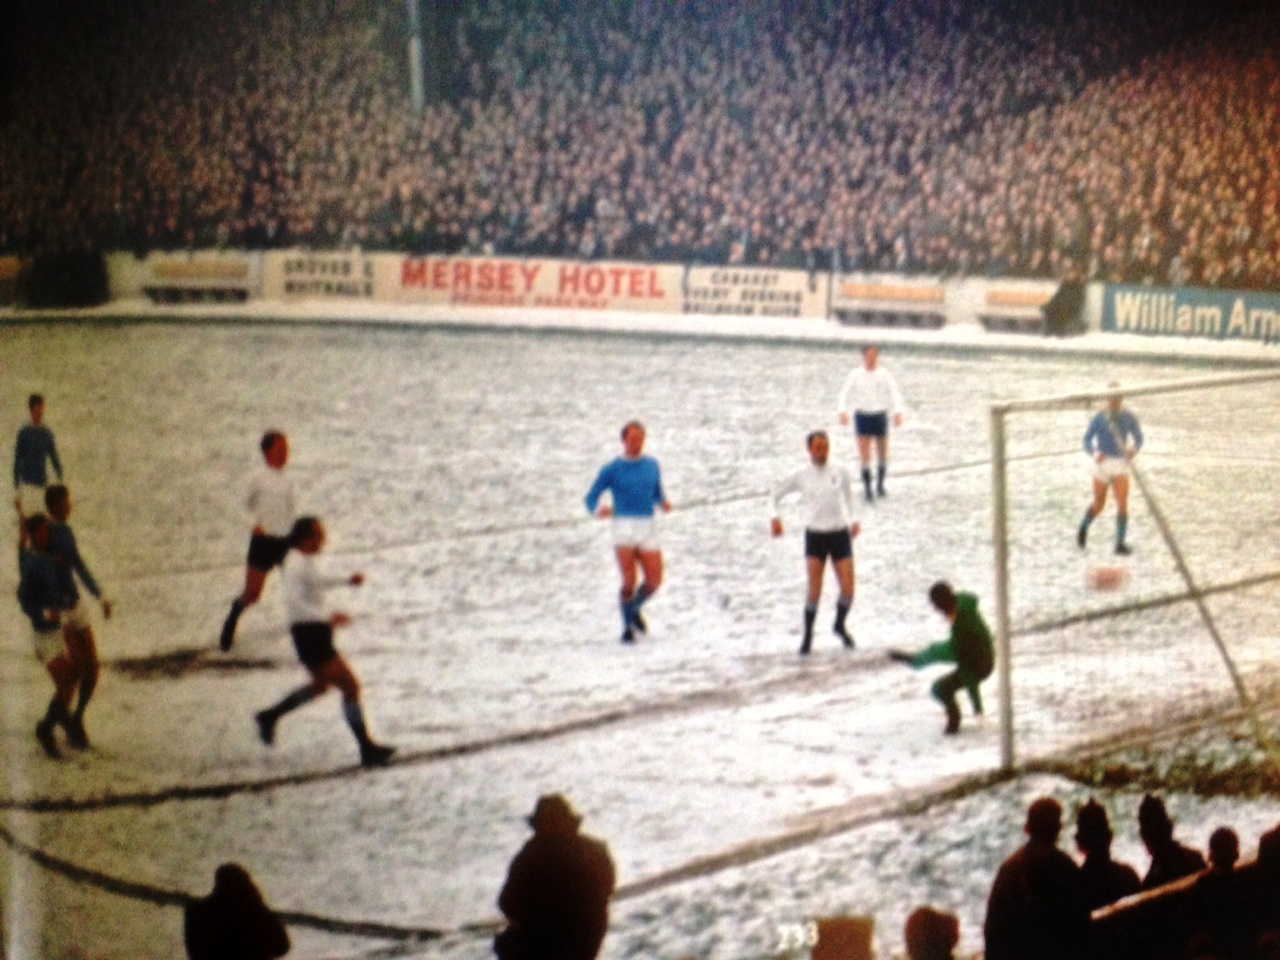 Ballet On Ice - A rare colour image from City's memorable 4-1 win over Spurs at Maine Road in the 1967-68 Championship winning season.